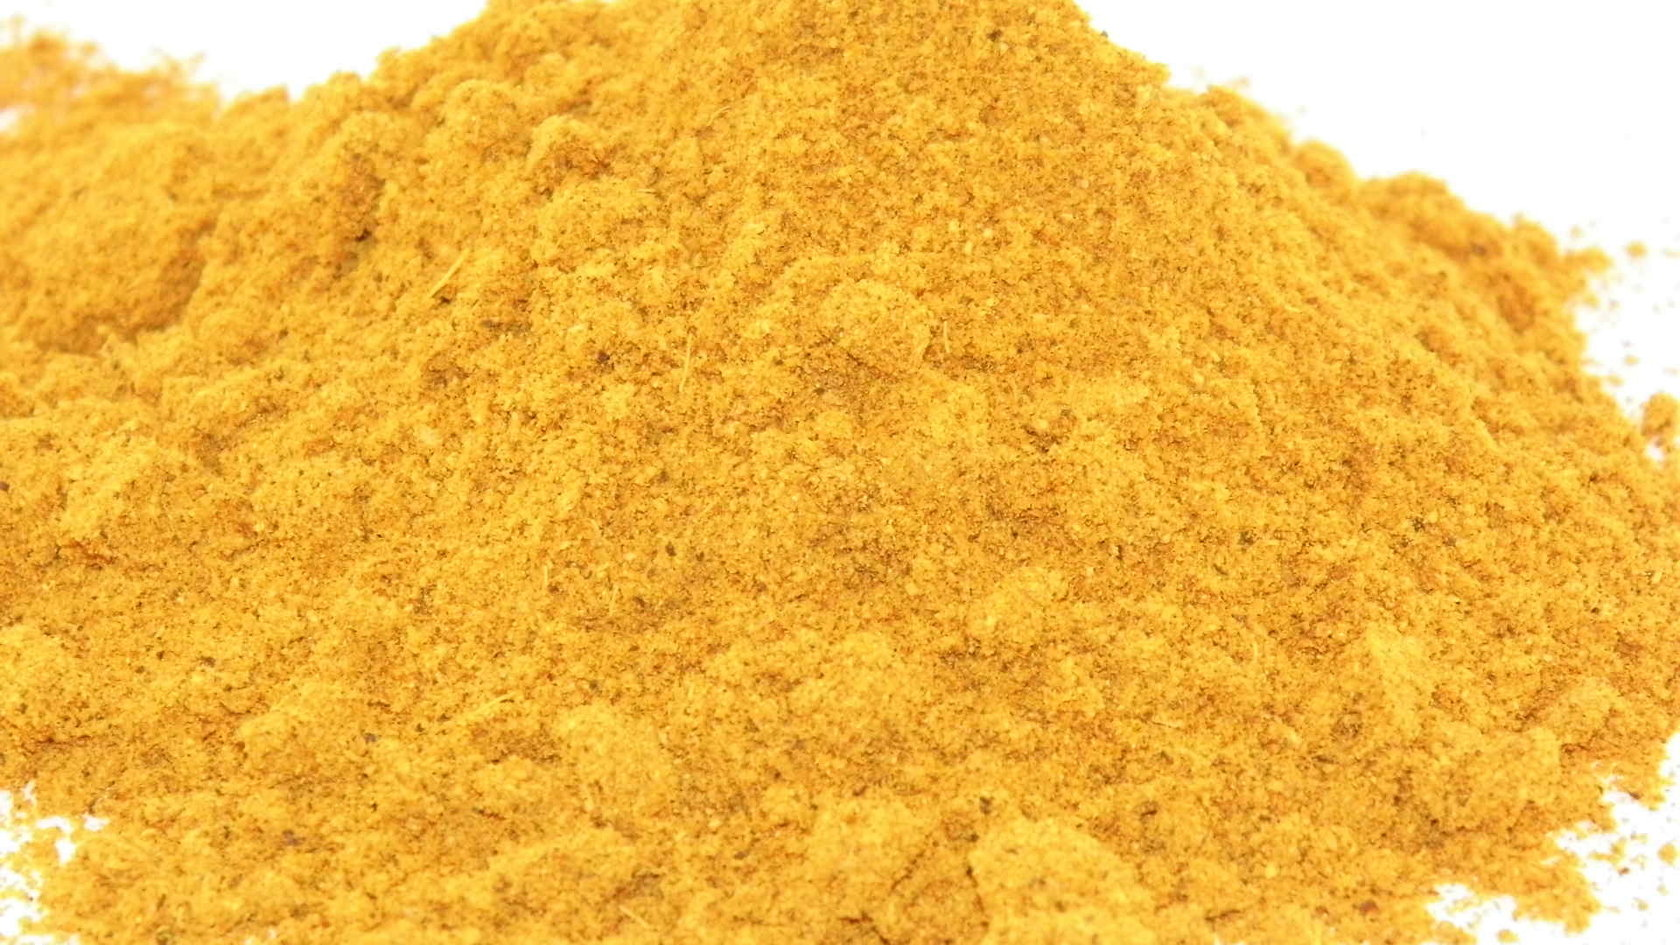 Frucht-Curry Citrus (50g) Curry Zitrone